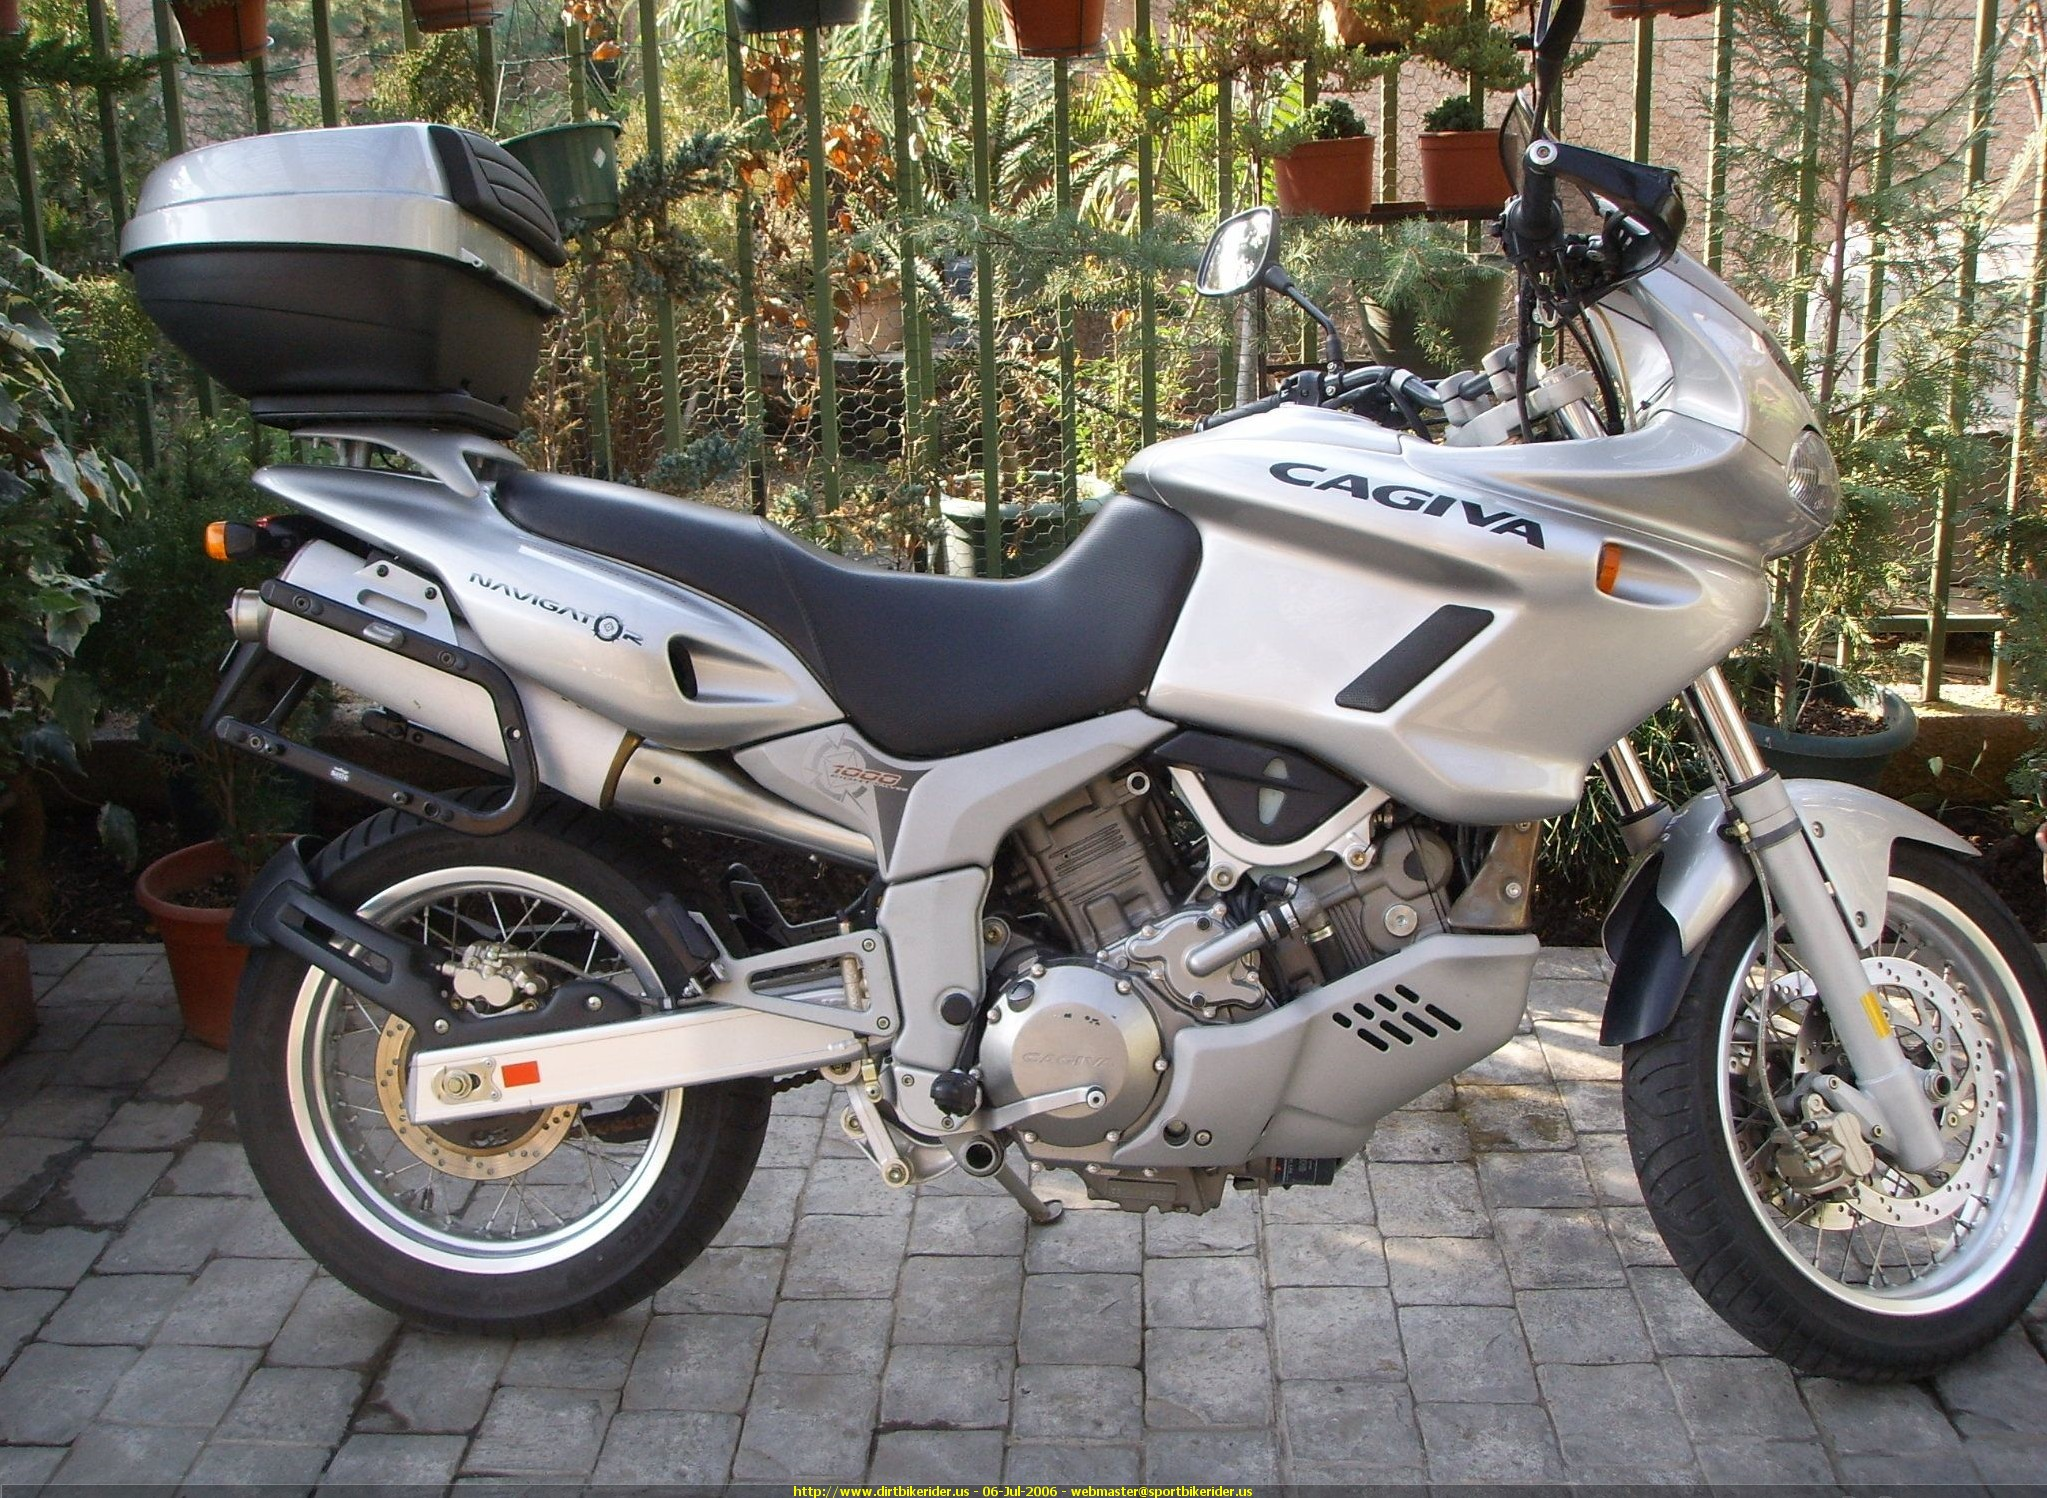 Cagiva Navigator 1000 2002 images #162840